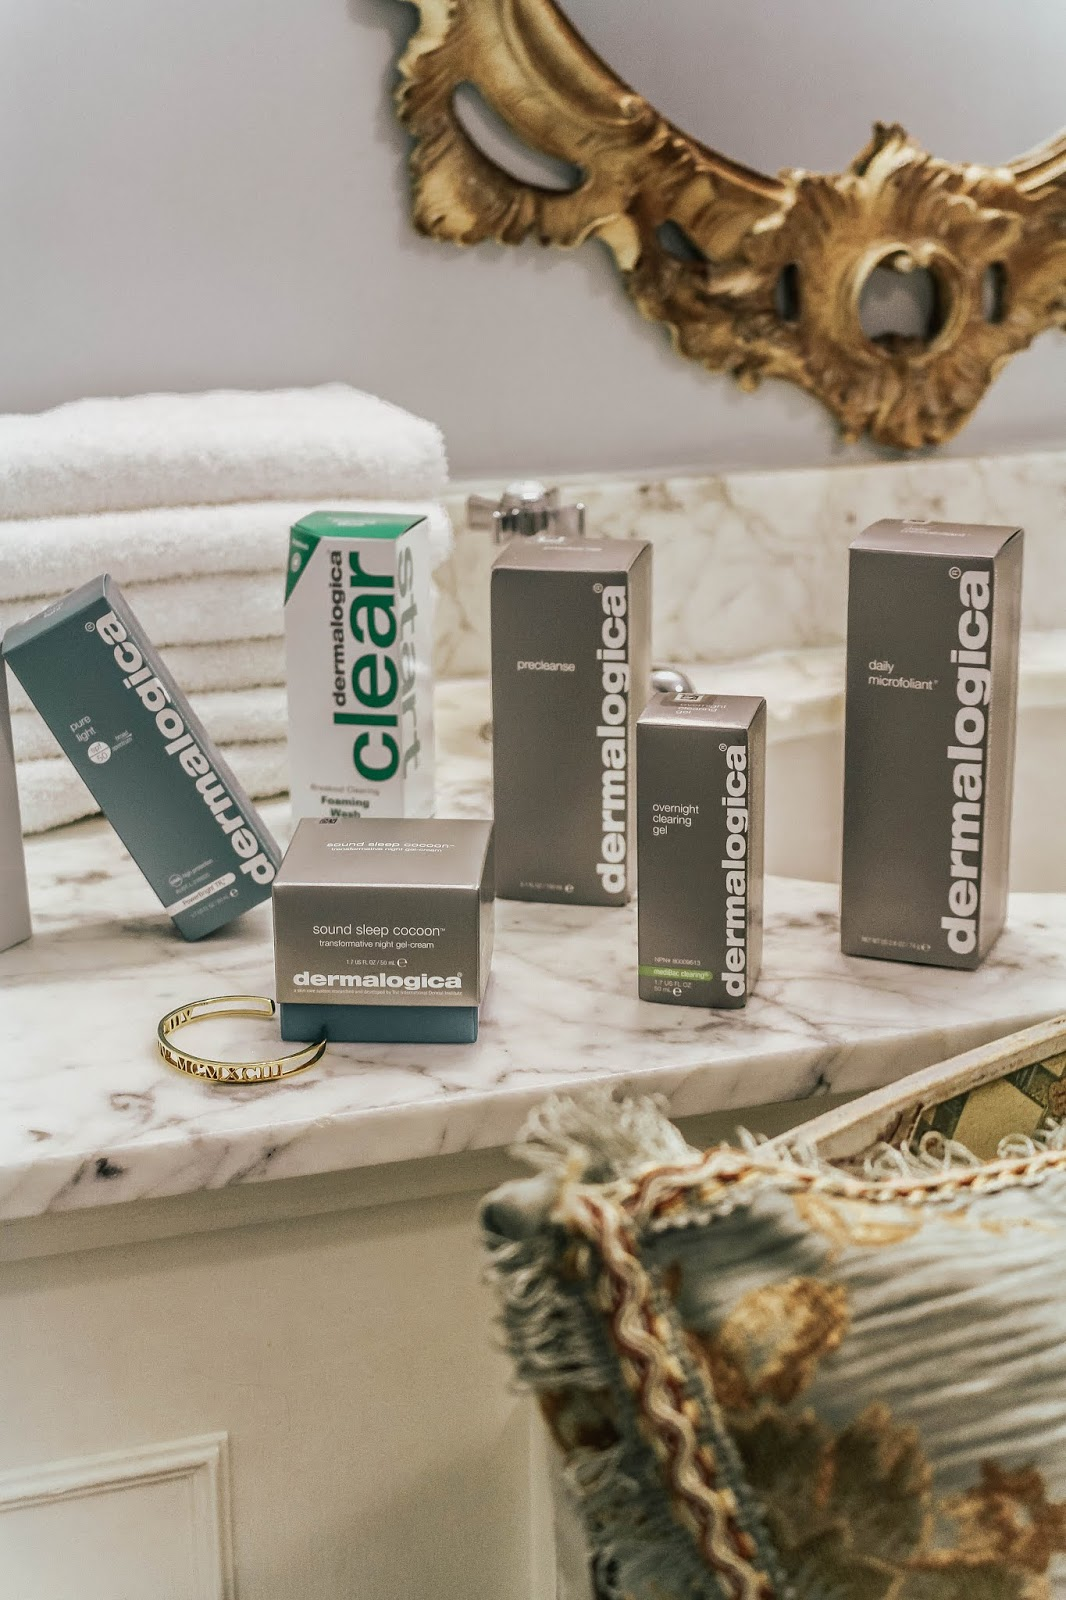 UK Beauty Blog Dermalogica Skincare Regime Review